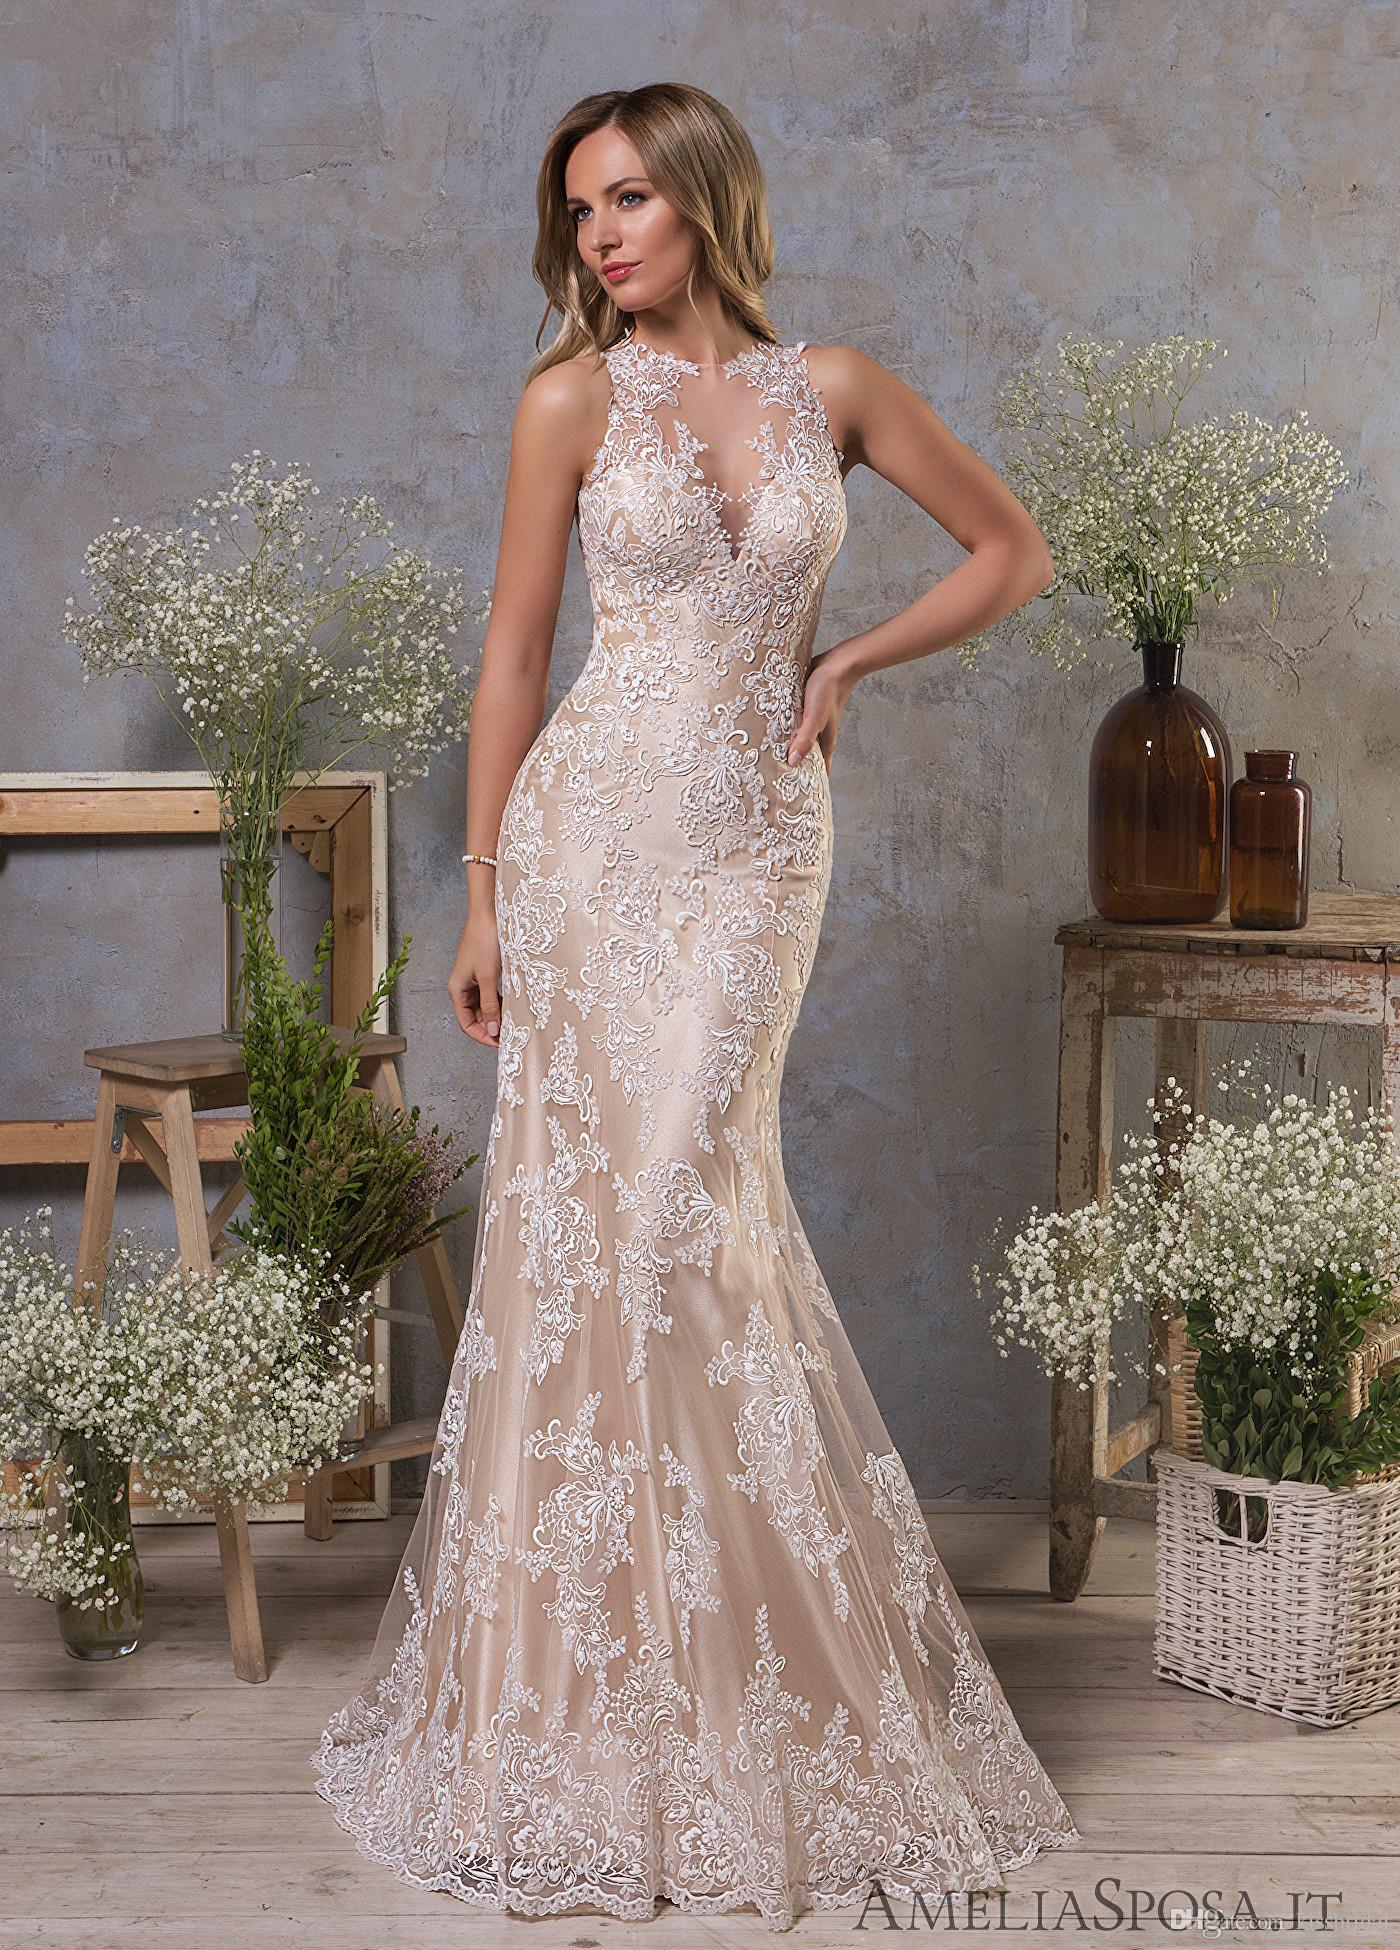 Cheap Wedding Dress Guest Outfits Discount Luxurious Floral Wedding Dresses 54974ae9ce58